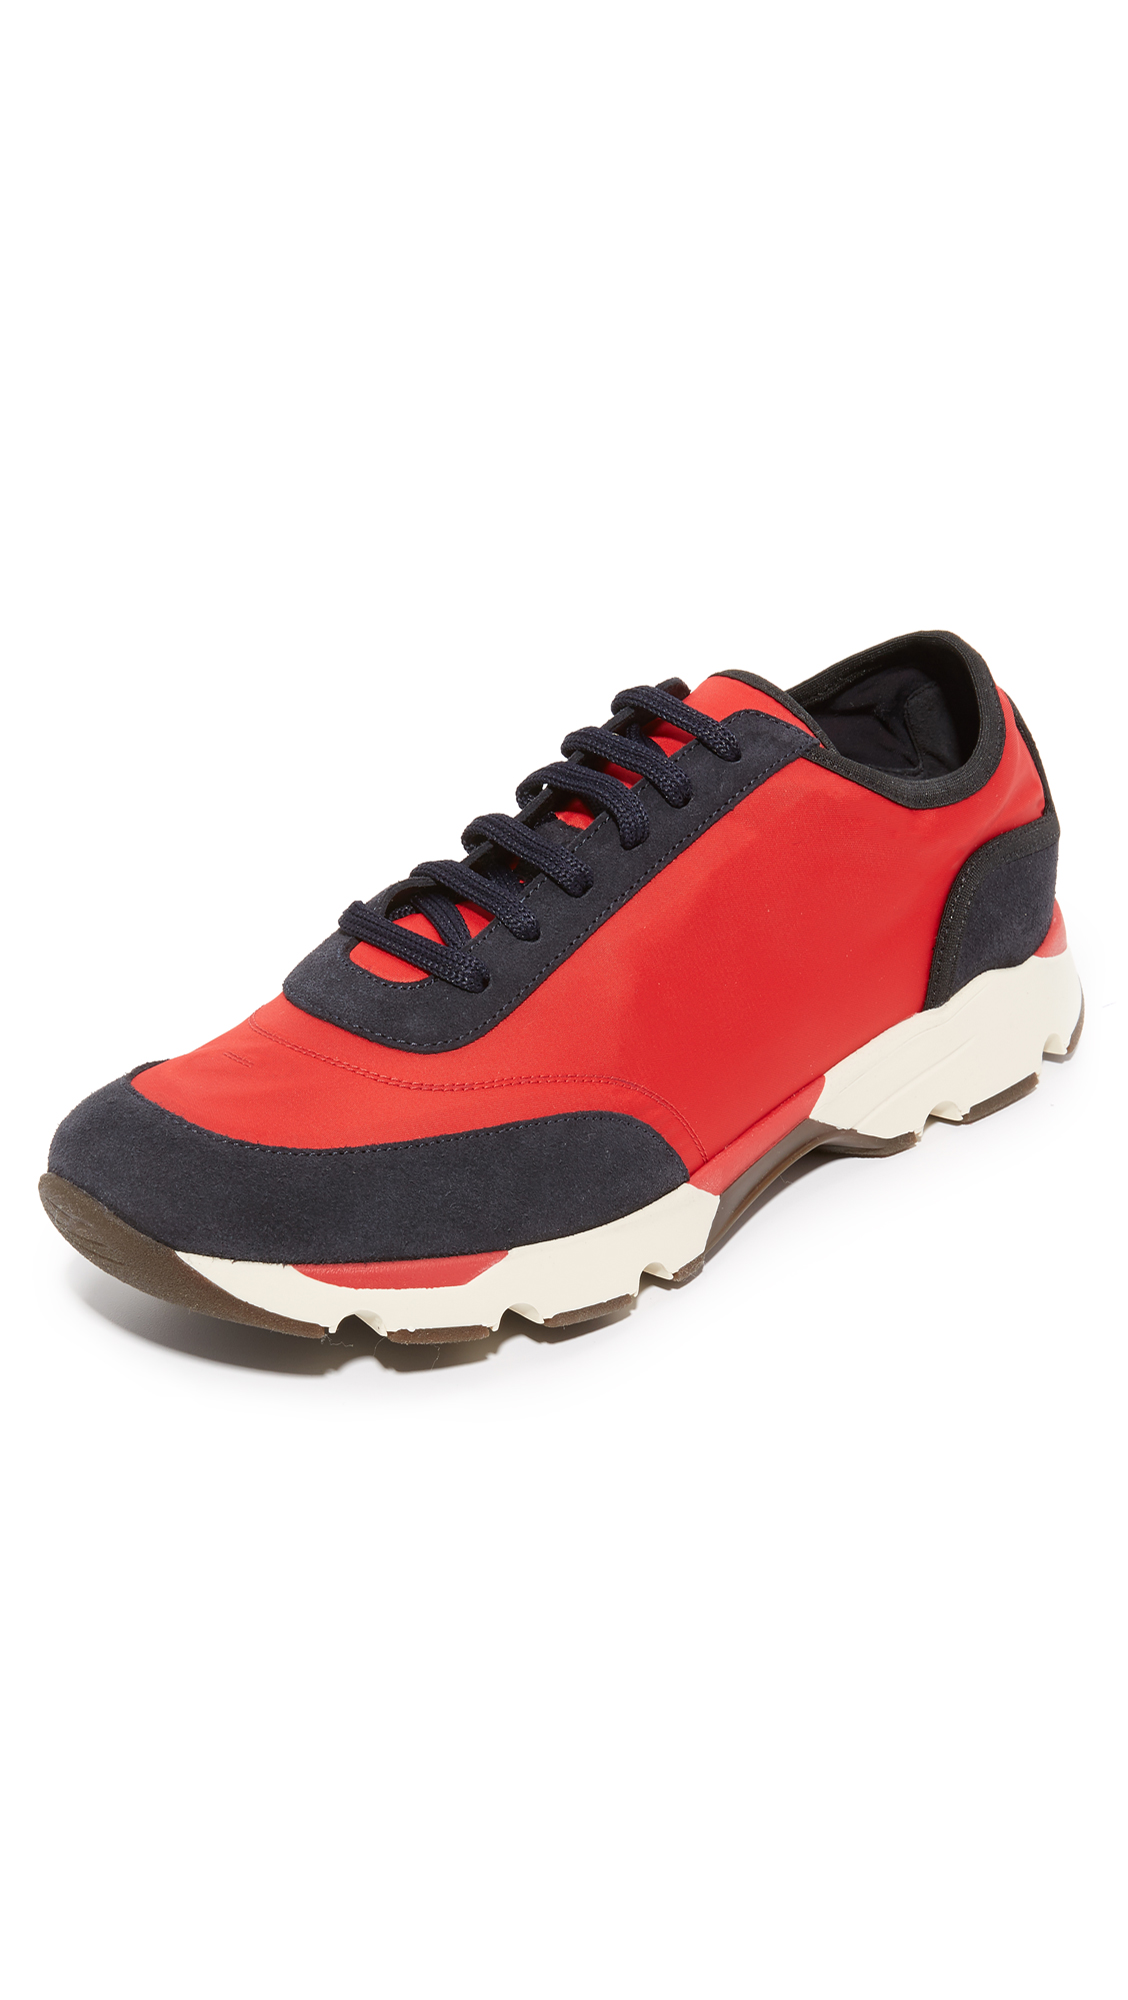 Marni Men's Nylon Low-top Sneakers In Red And Black